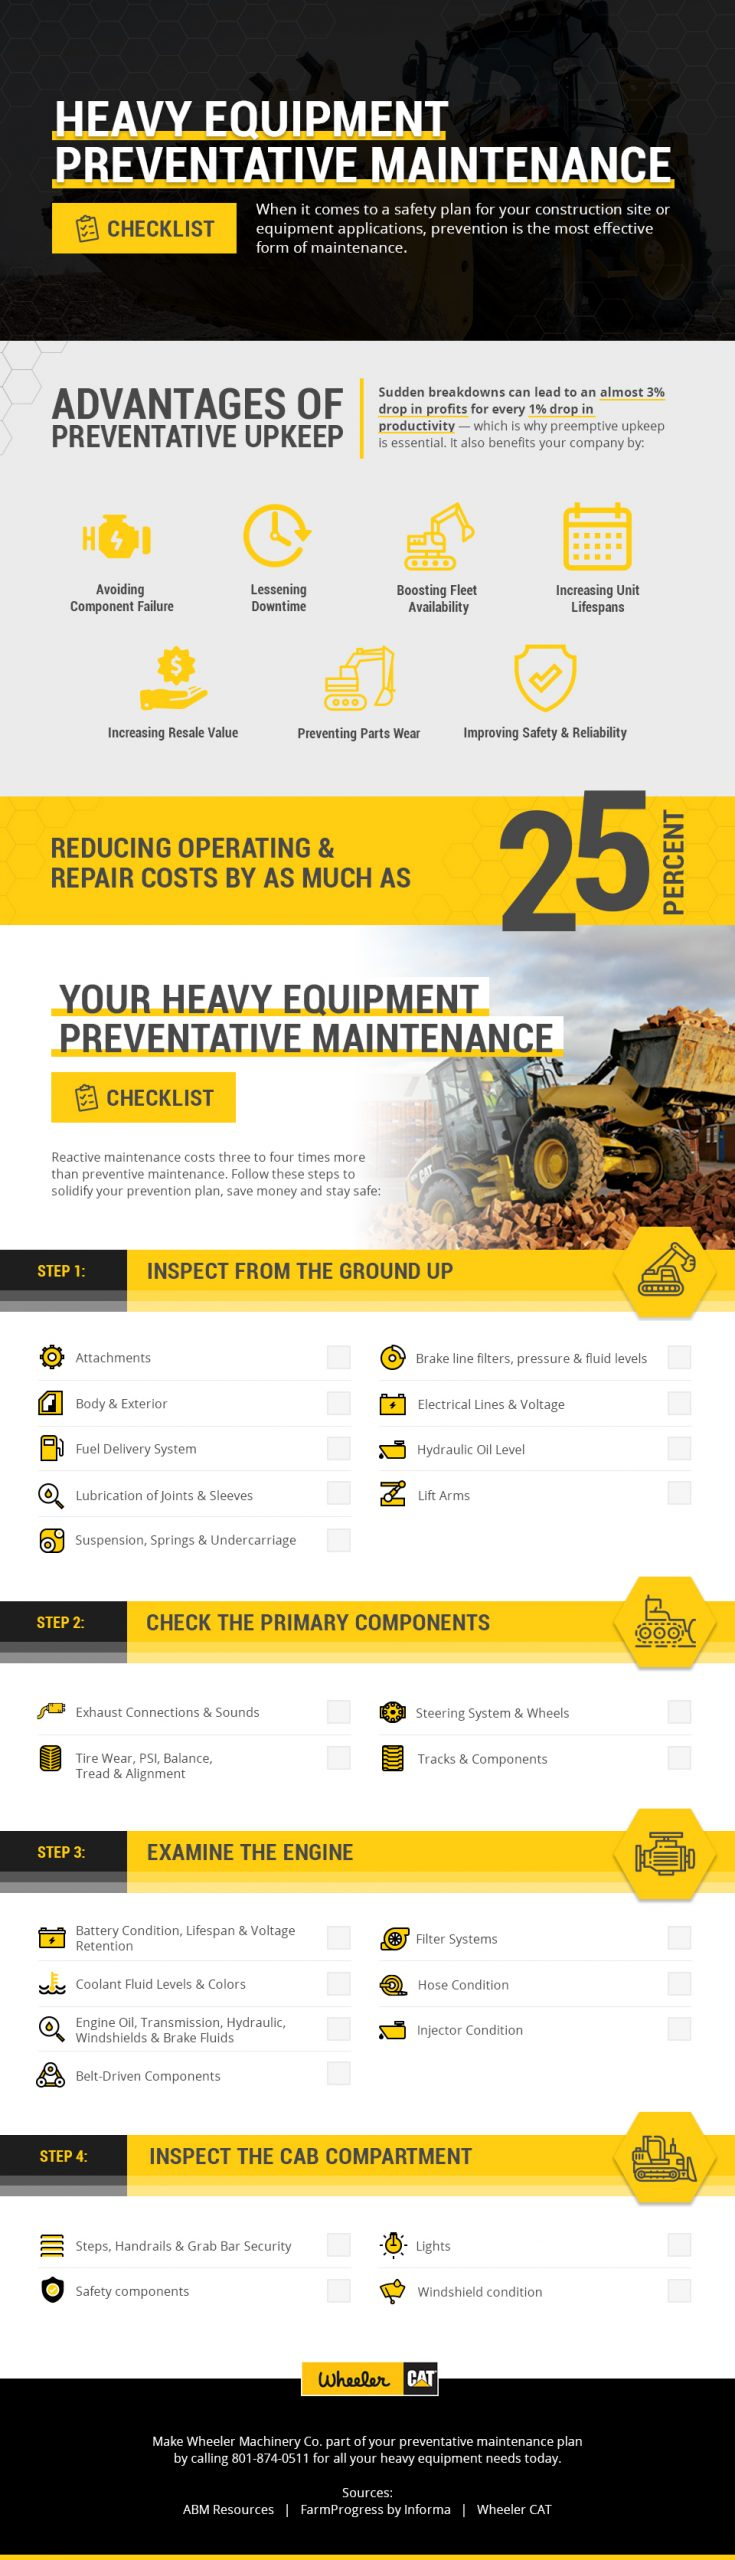 Heavy Equipment Preventative Maintenance Checklist